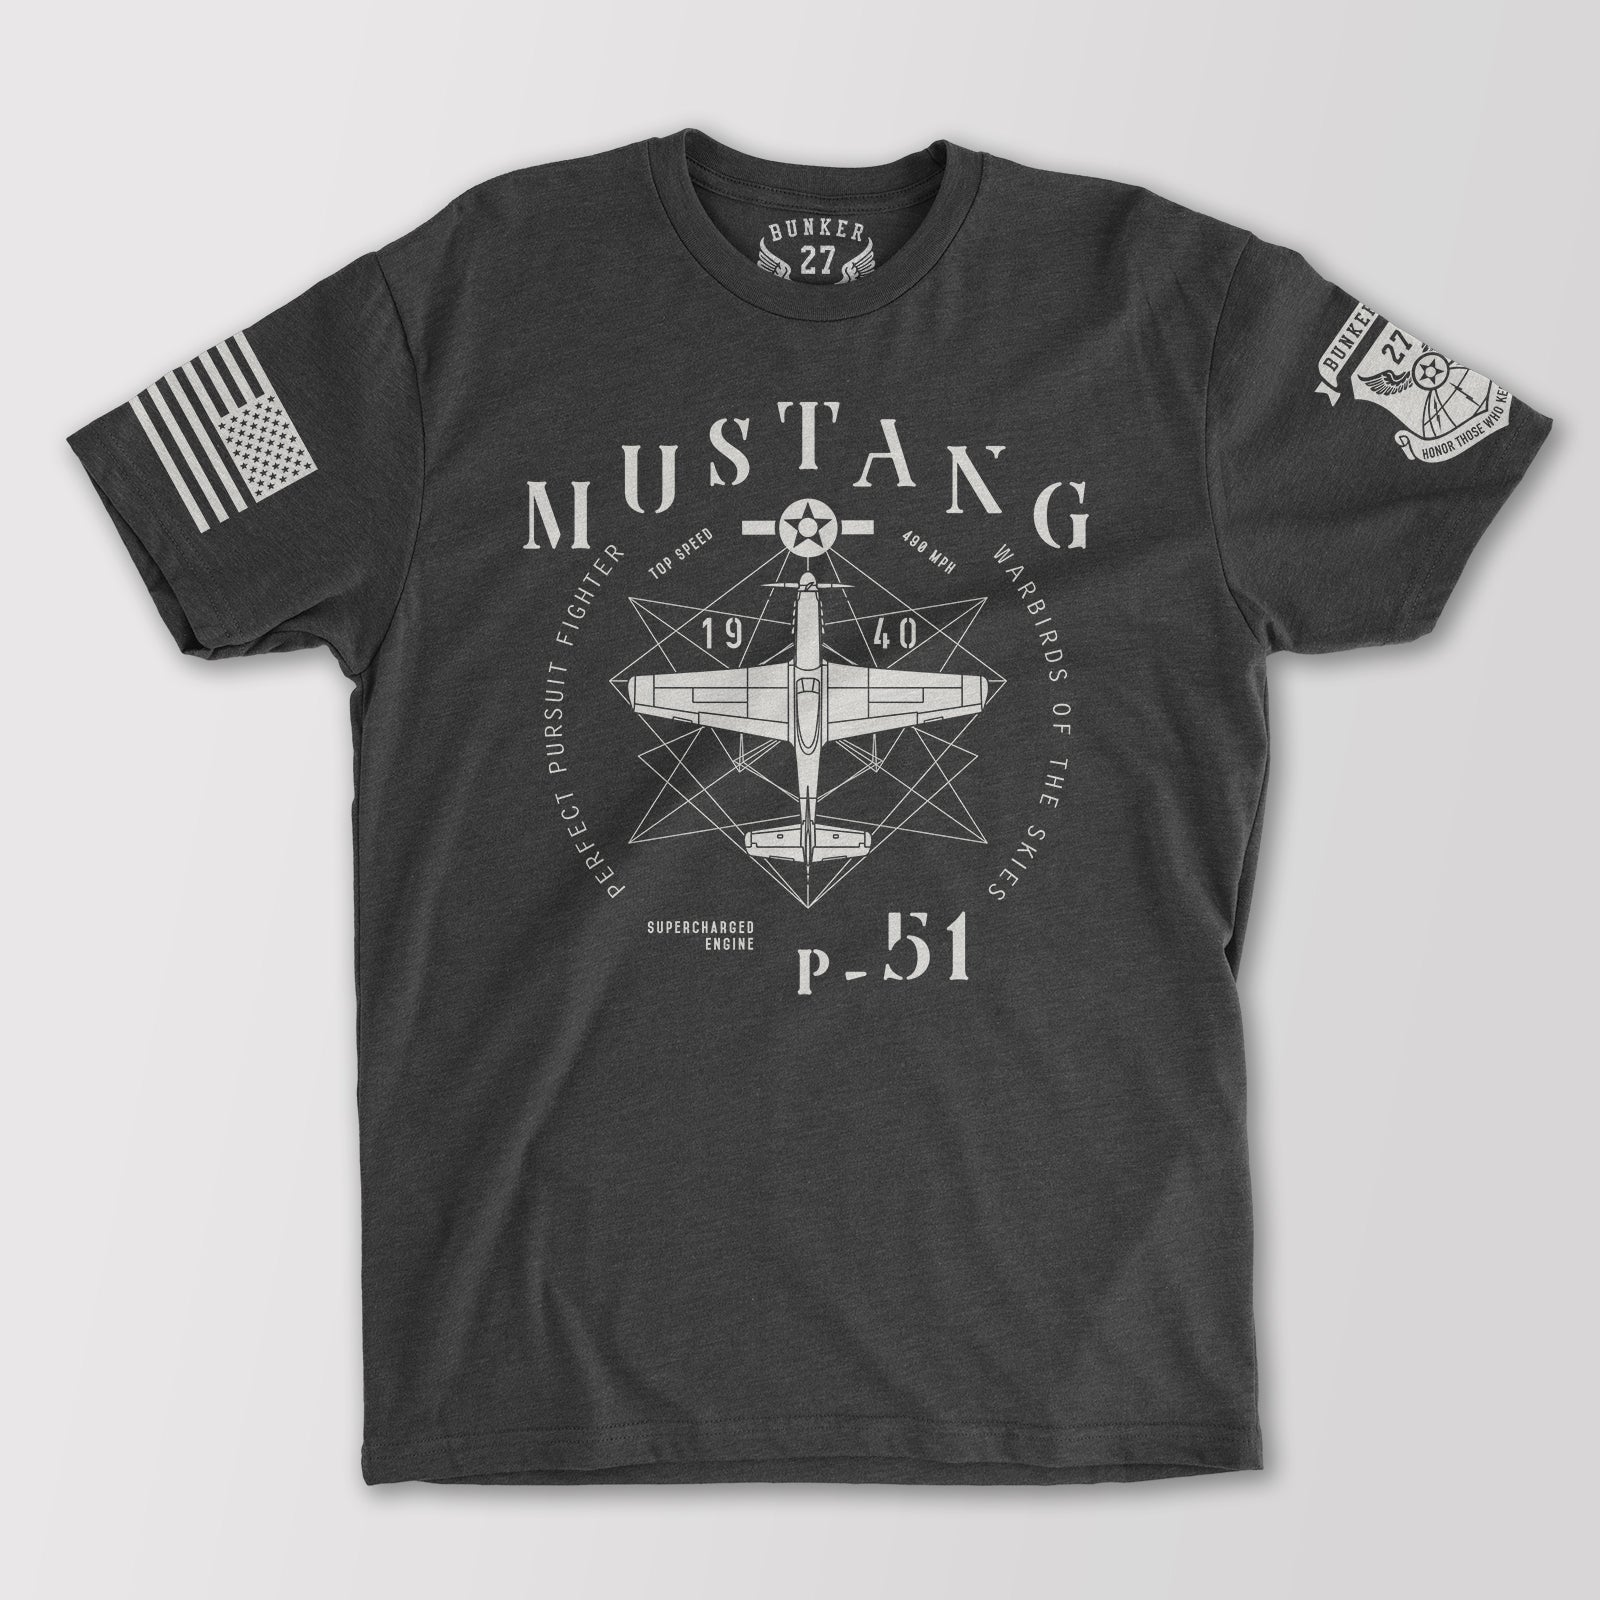 P-51 Mustang T-Shirt Aviation T-Shirts Military Bunker 27